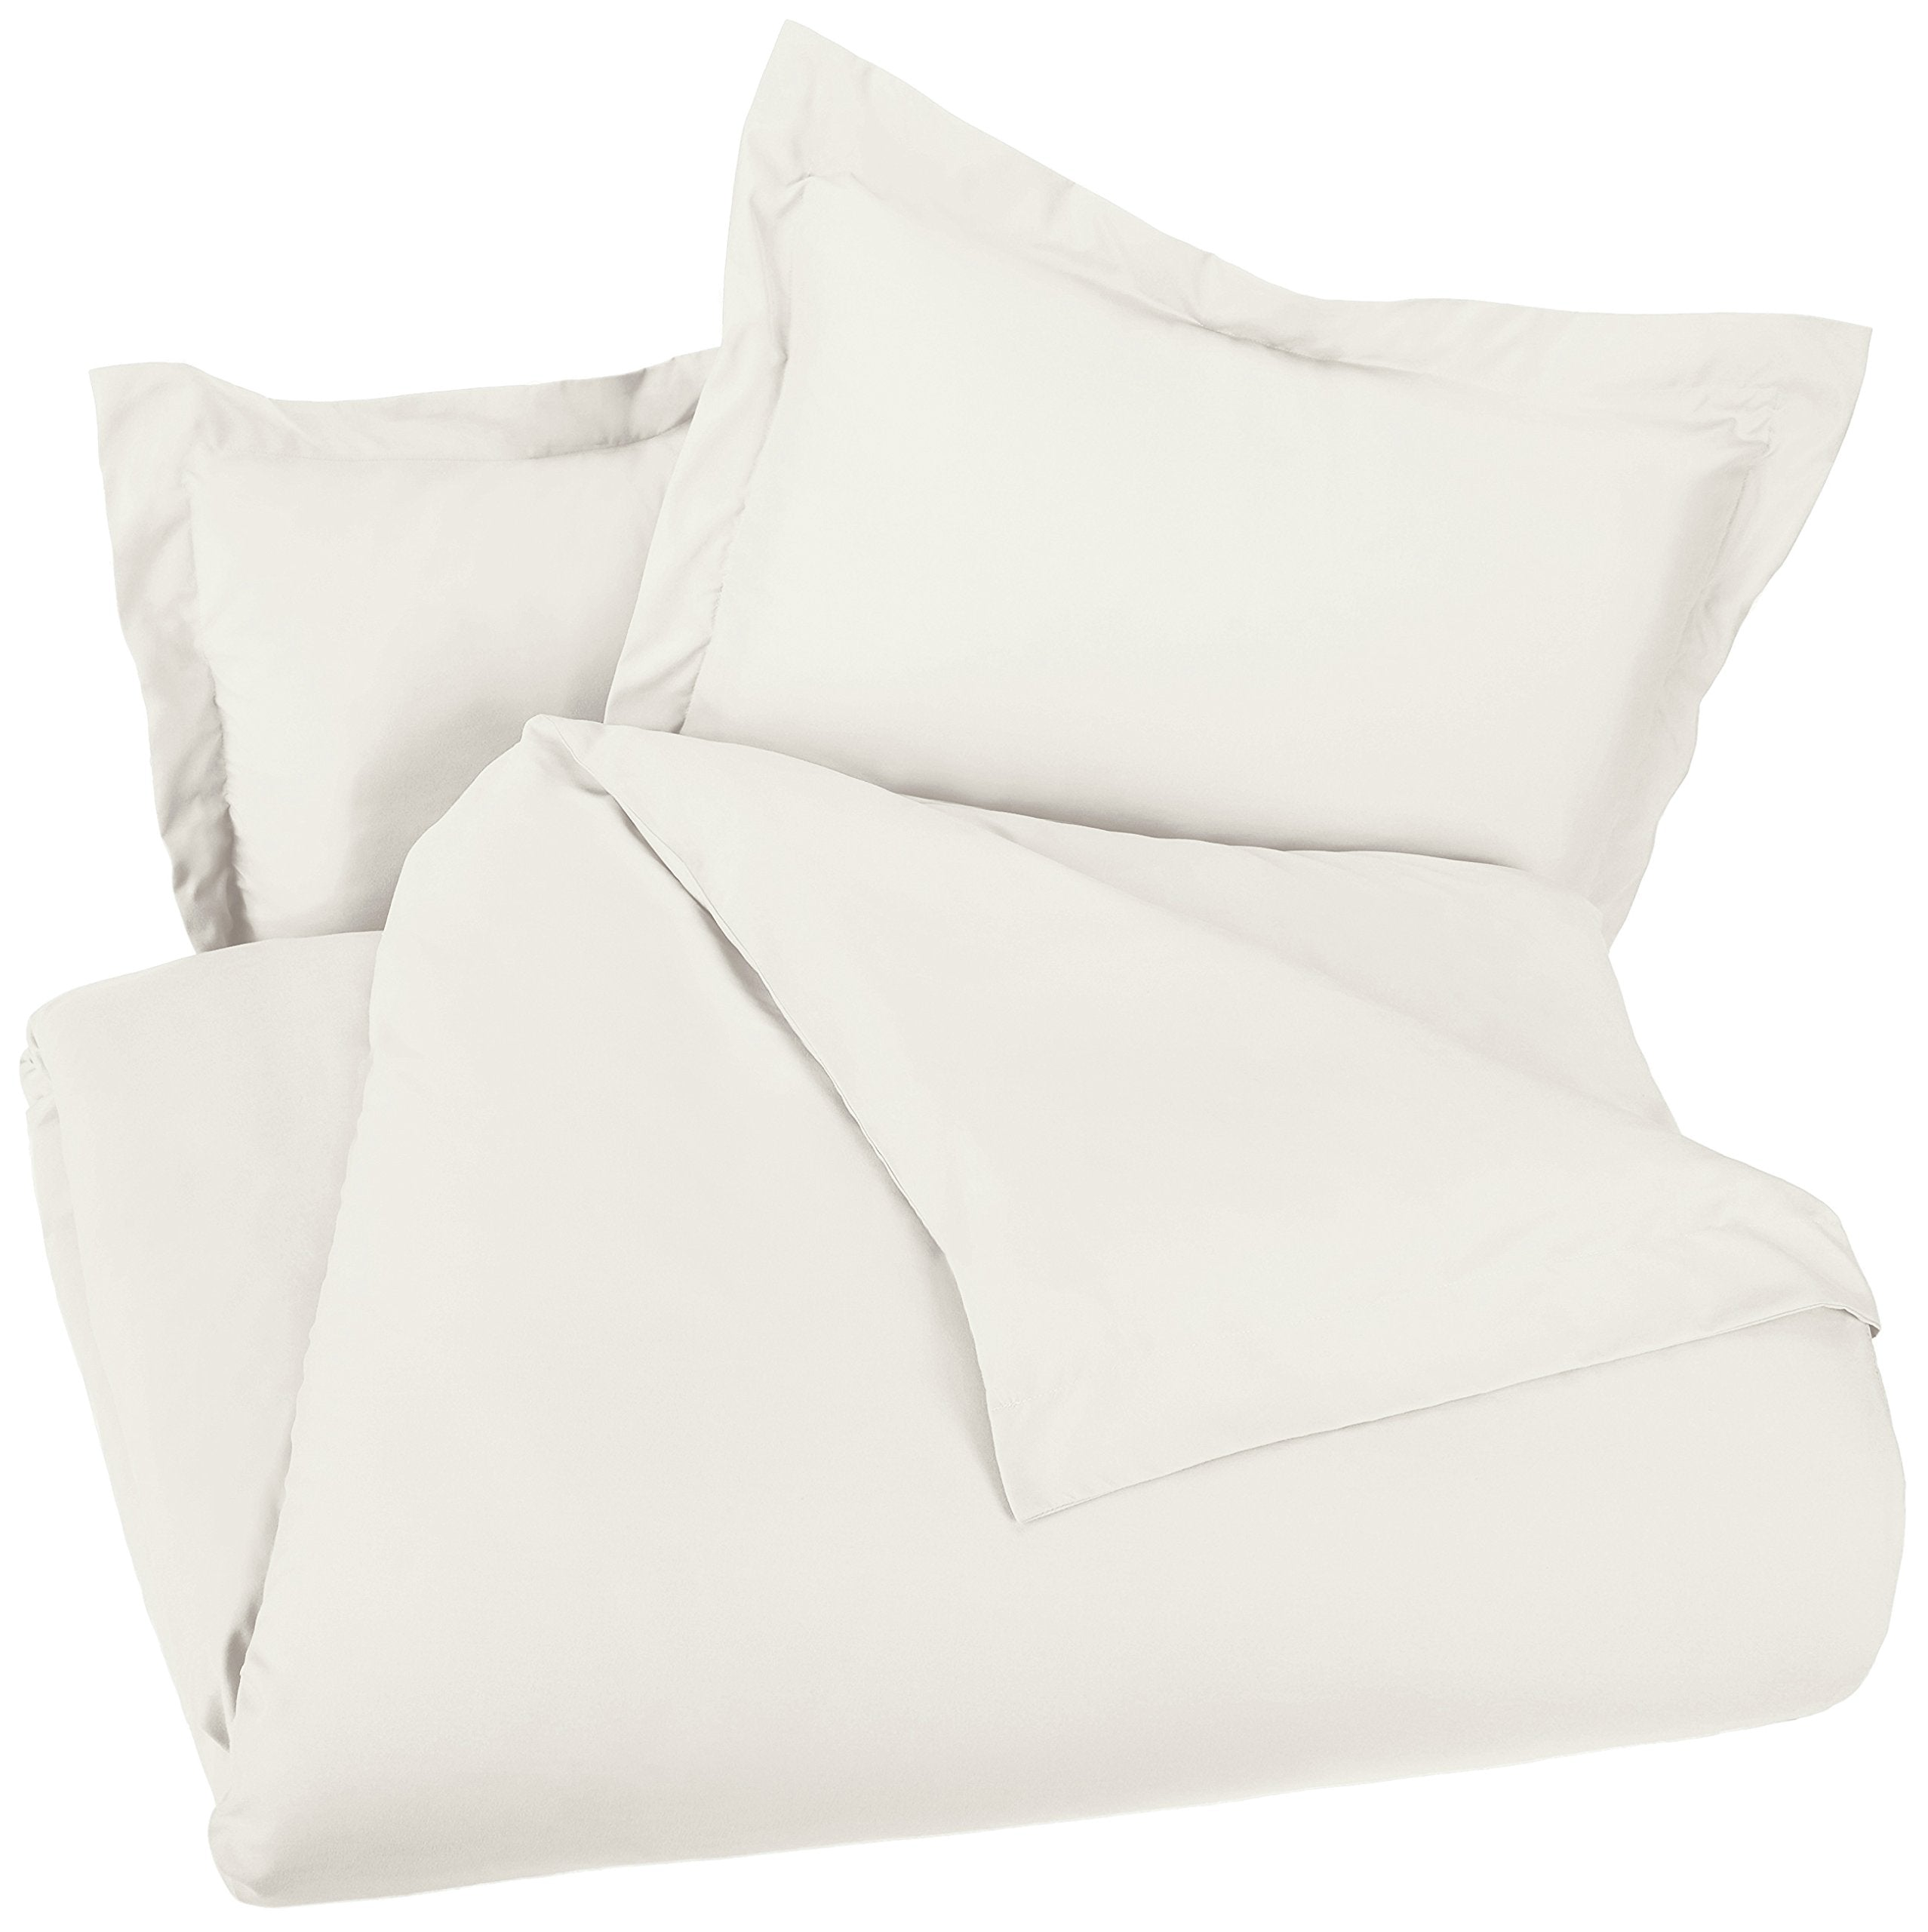 Microfiber Duvet Cover Set - Lightweight and Soft - Twin/Twin XL, Beige